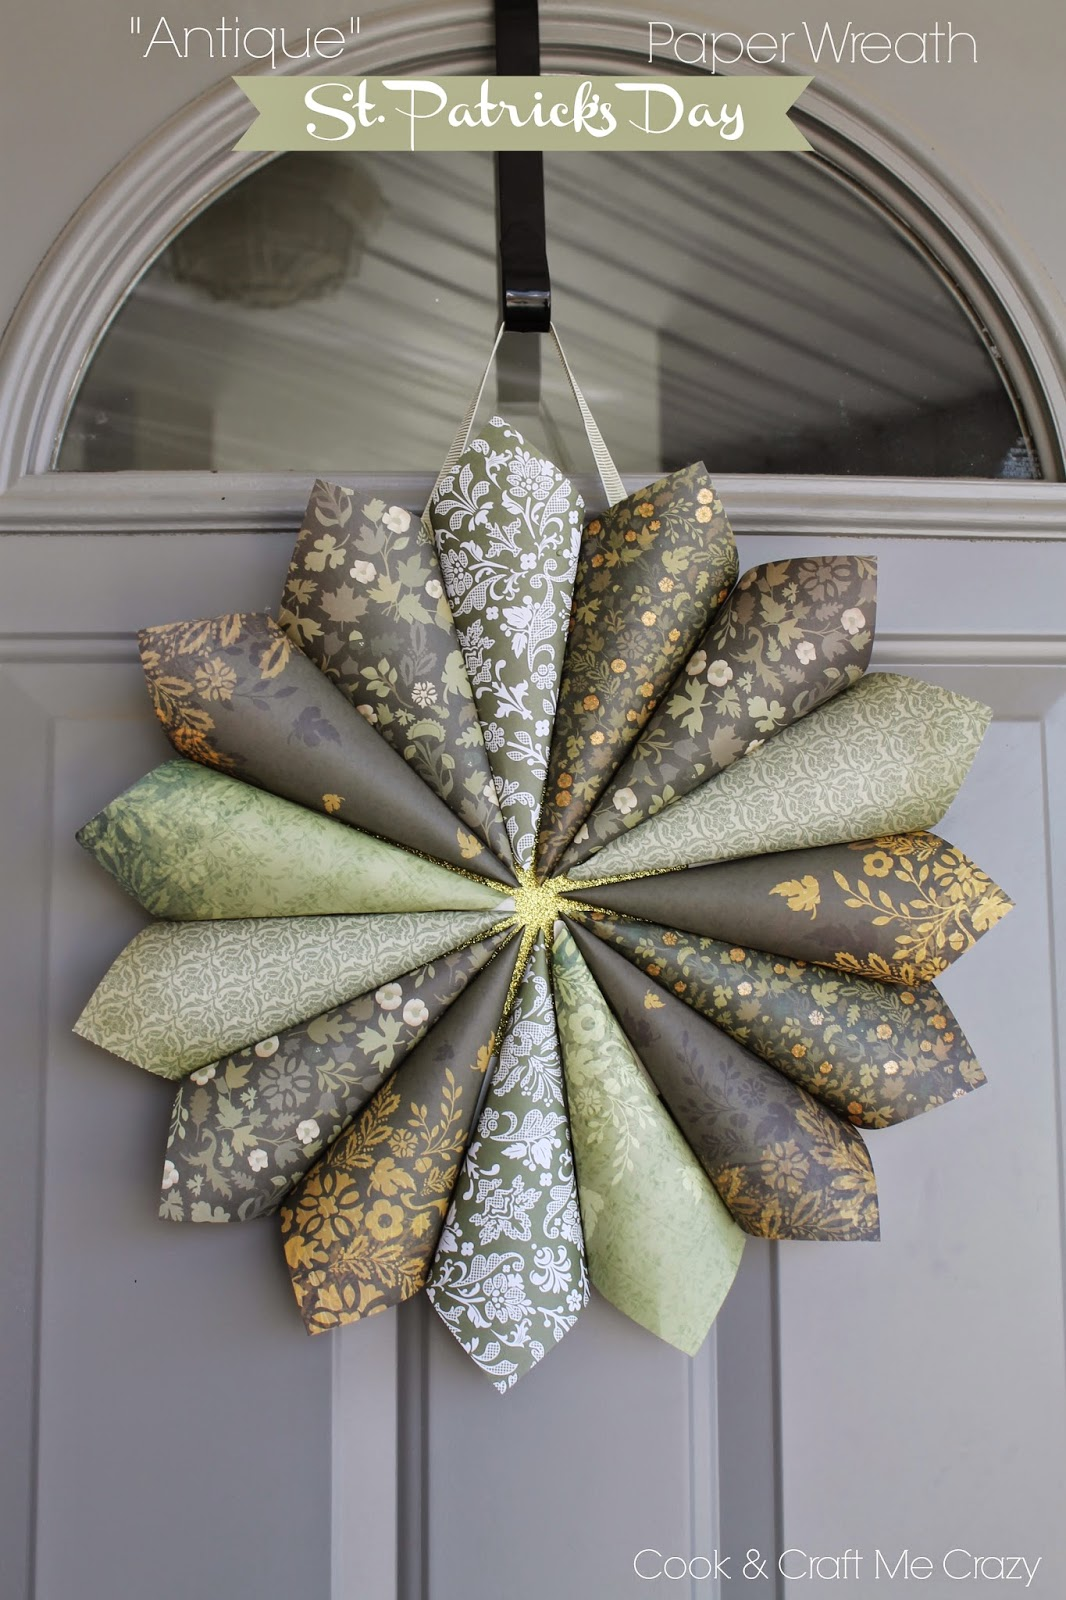 http://cookandcraftmecrazy.blogspot.com/2015/02/antique-st-patricks-day-paper-wreath.html